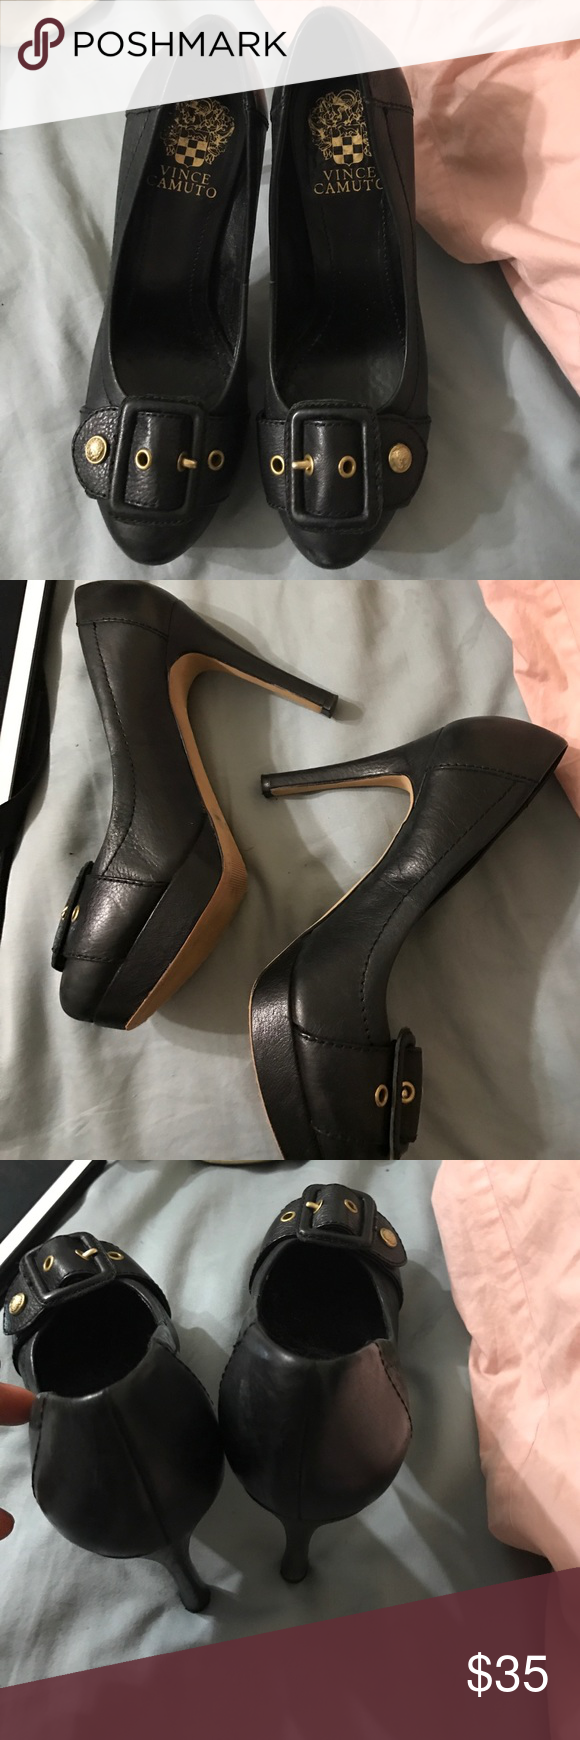 Vince Camuto Shoes Size 6.5 Vince Camuto Shoes Heeled Boots